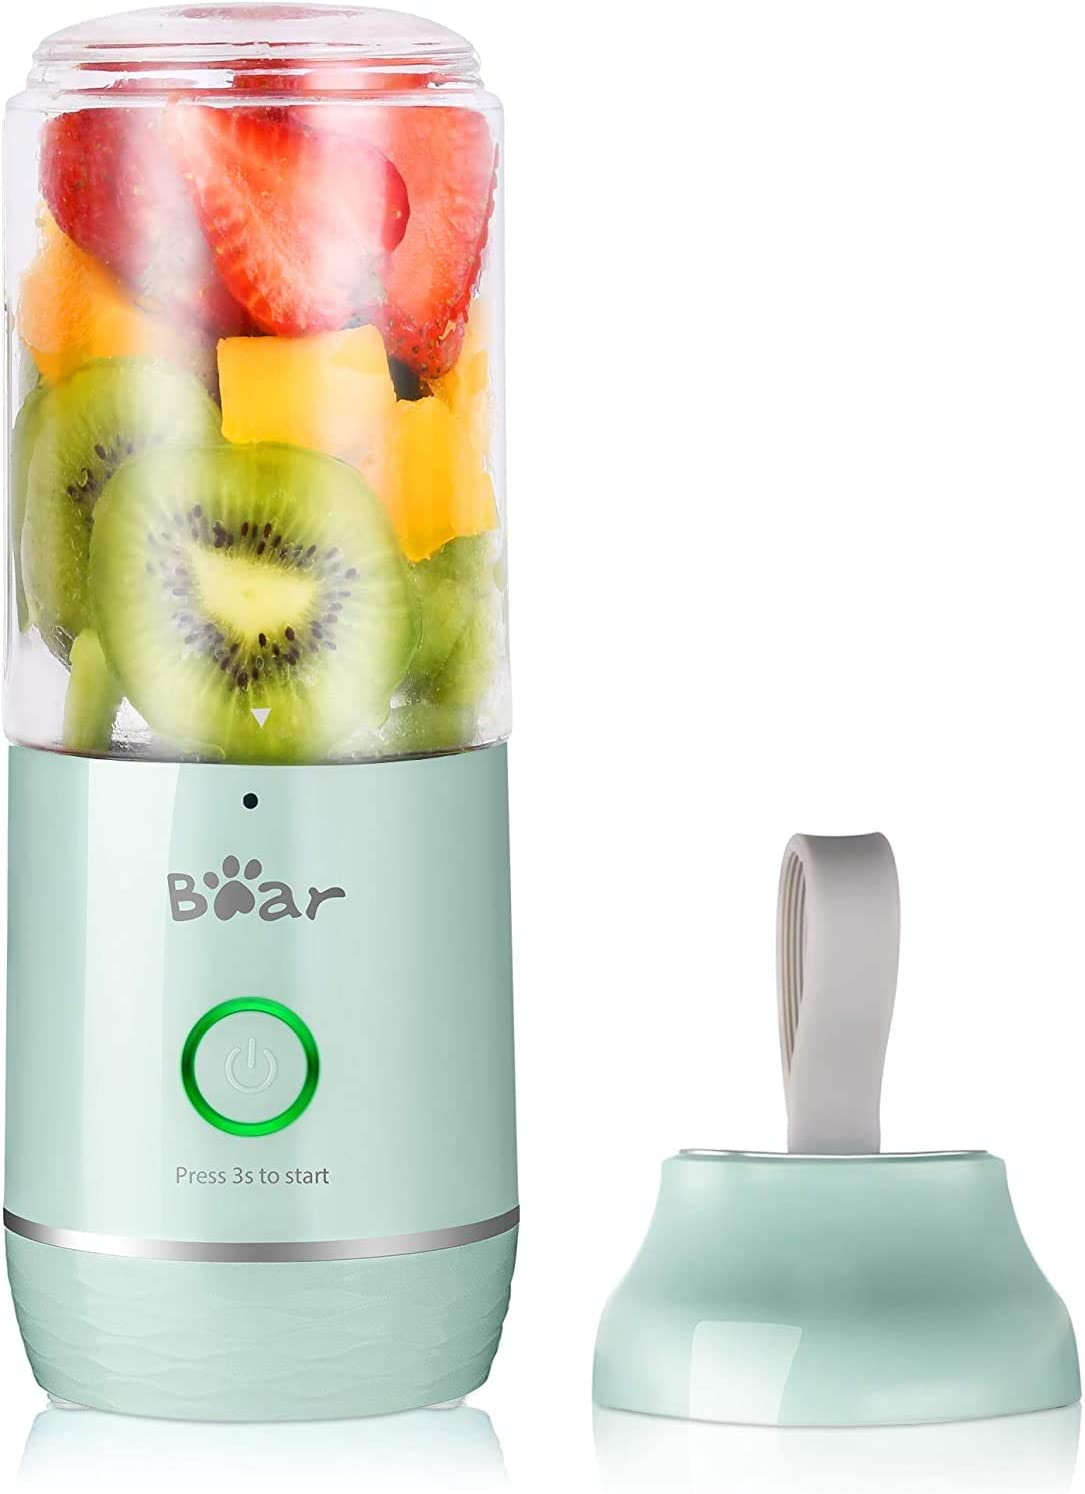 Popular shop is the lowest price challenge DishyKooker Portable Blender with Seasonal Wrap Introduction USB Free Bottles Rech